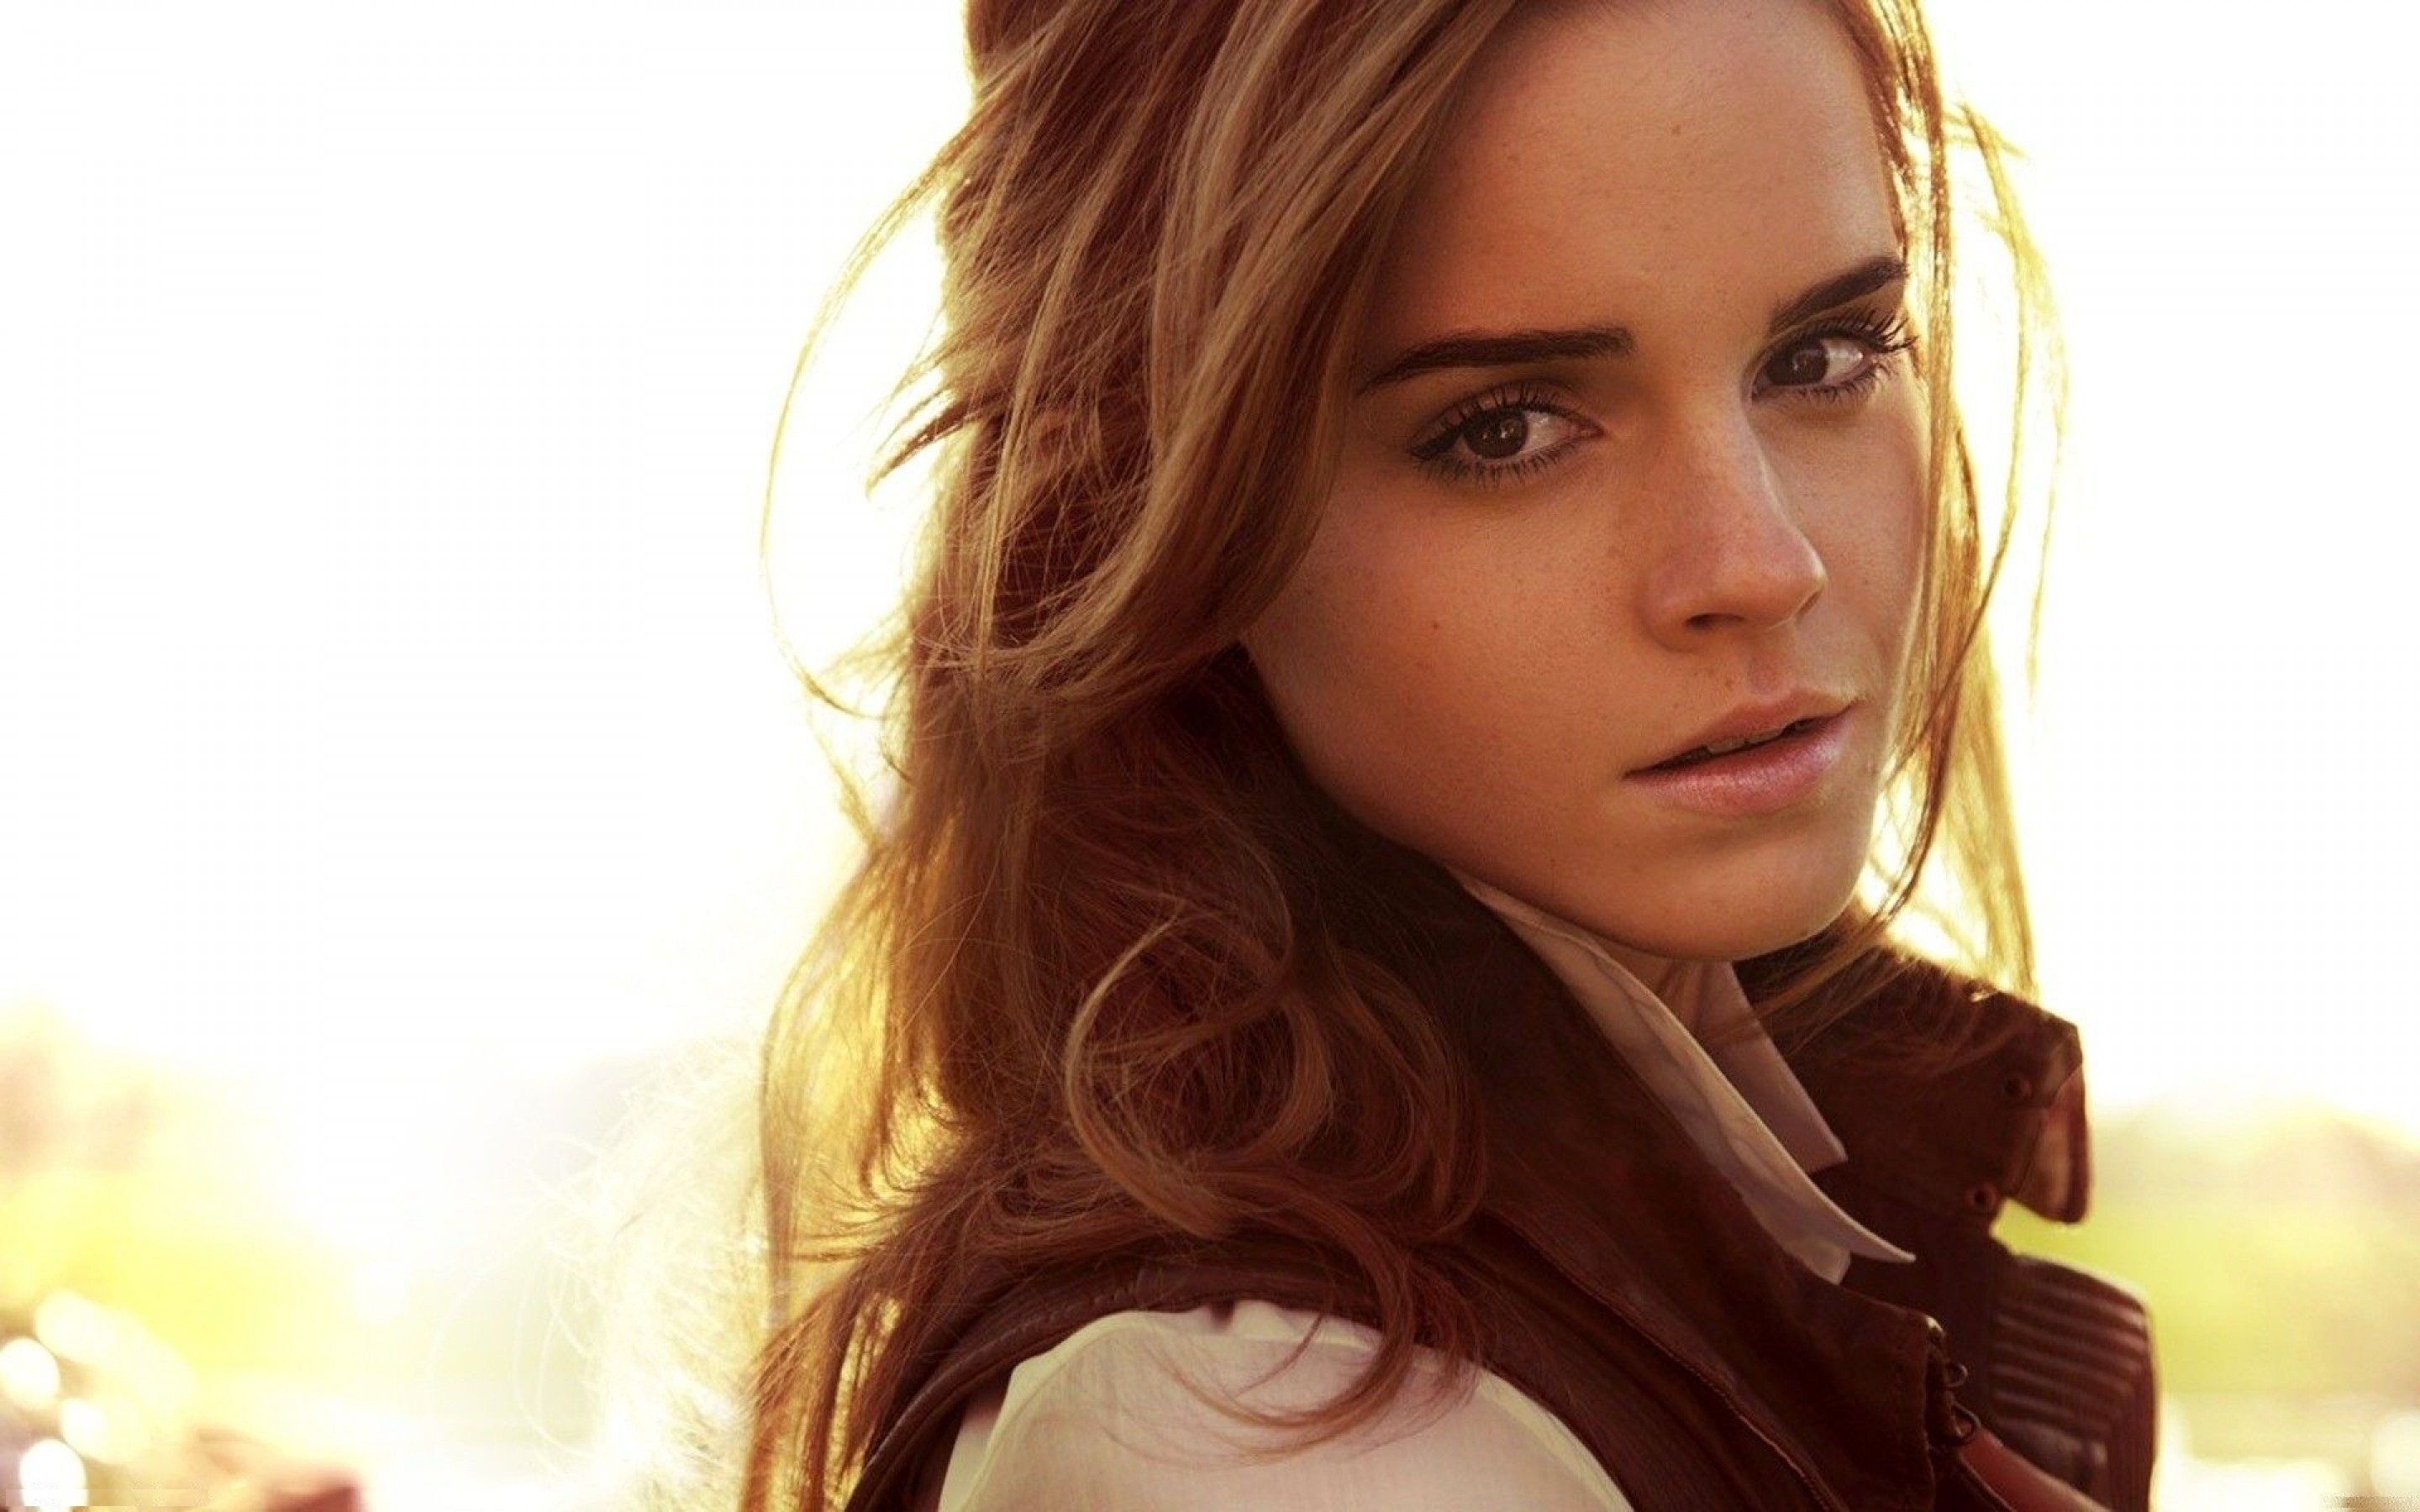 Lovely Emma Watson Download Background Fantastic Side Face Hd Photo Free